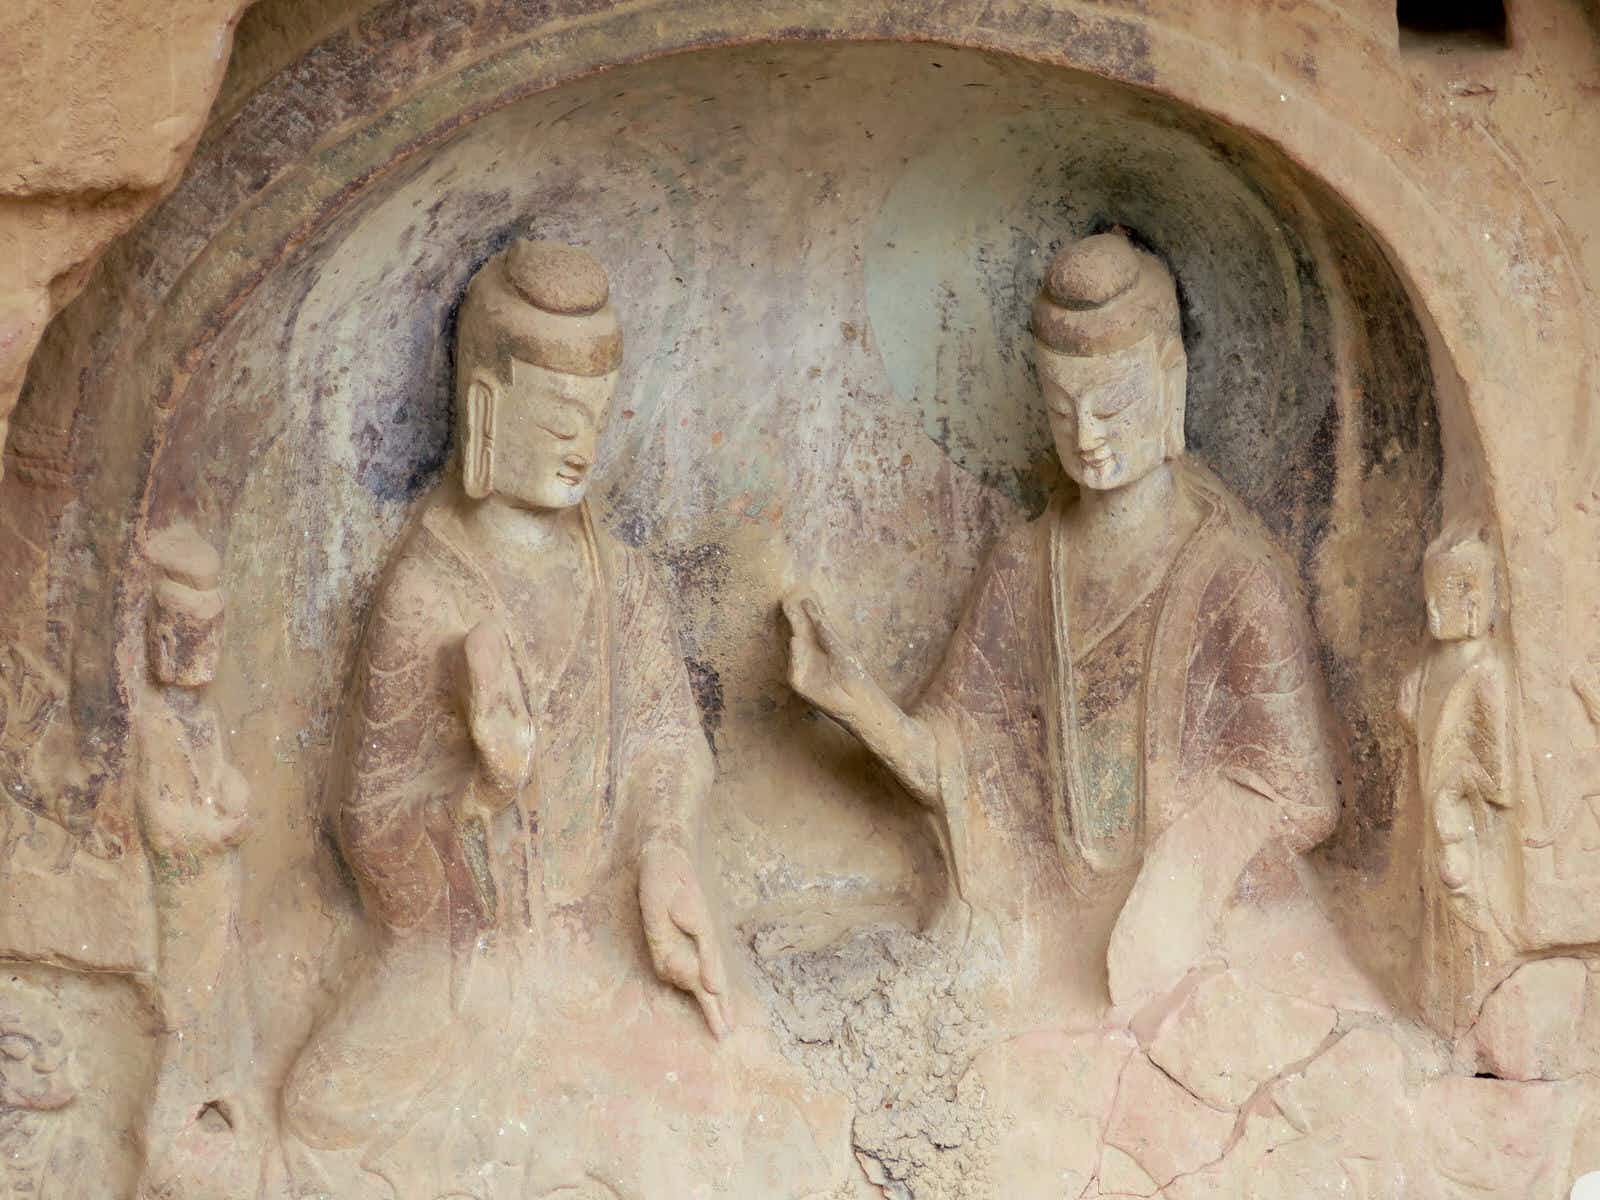 China's Buddhist caves: the enduring art of the Silk Road